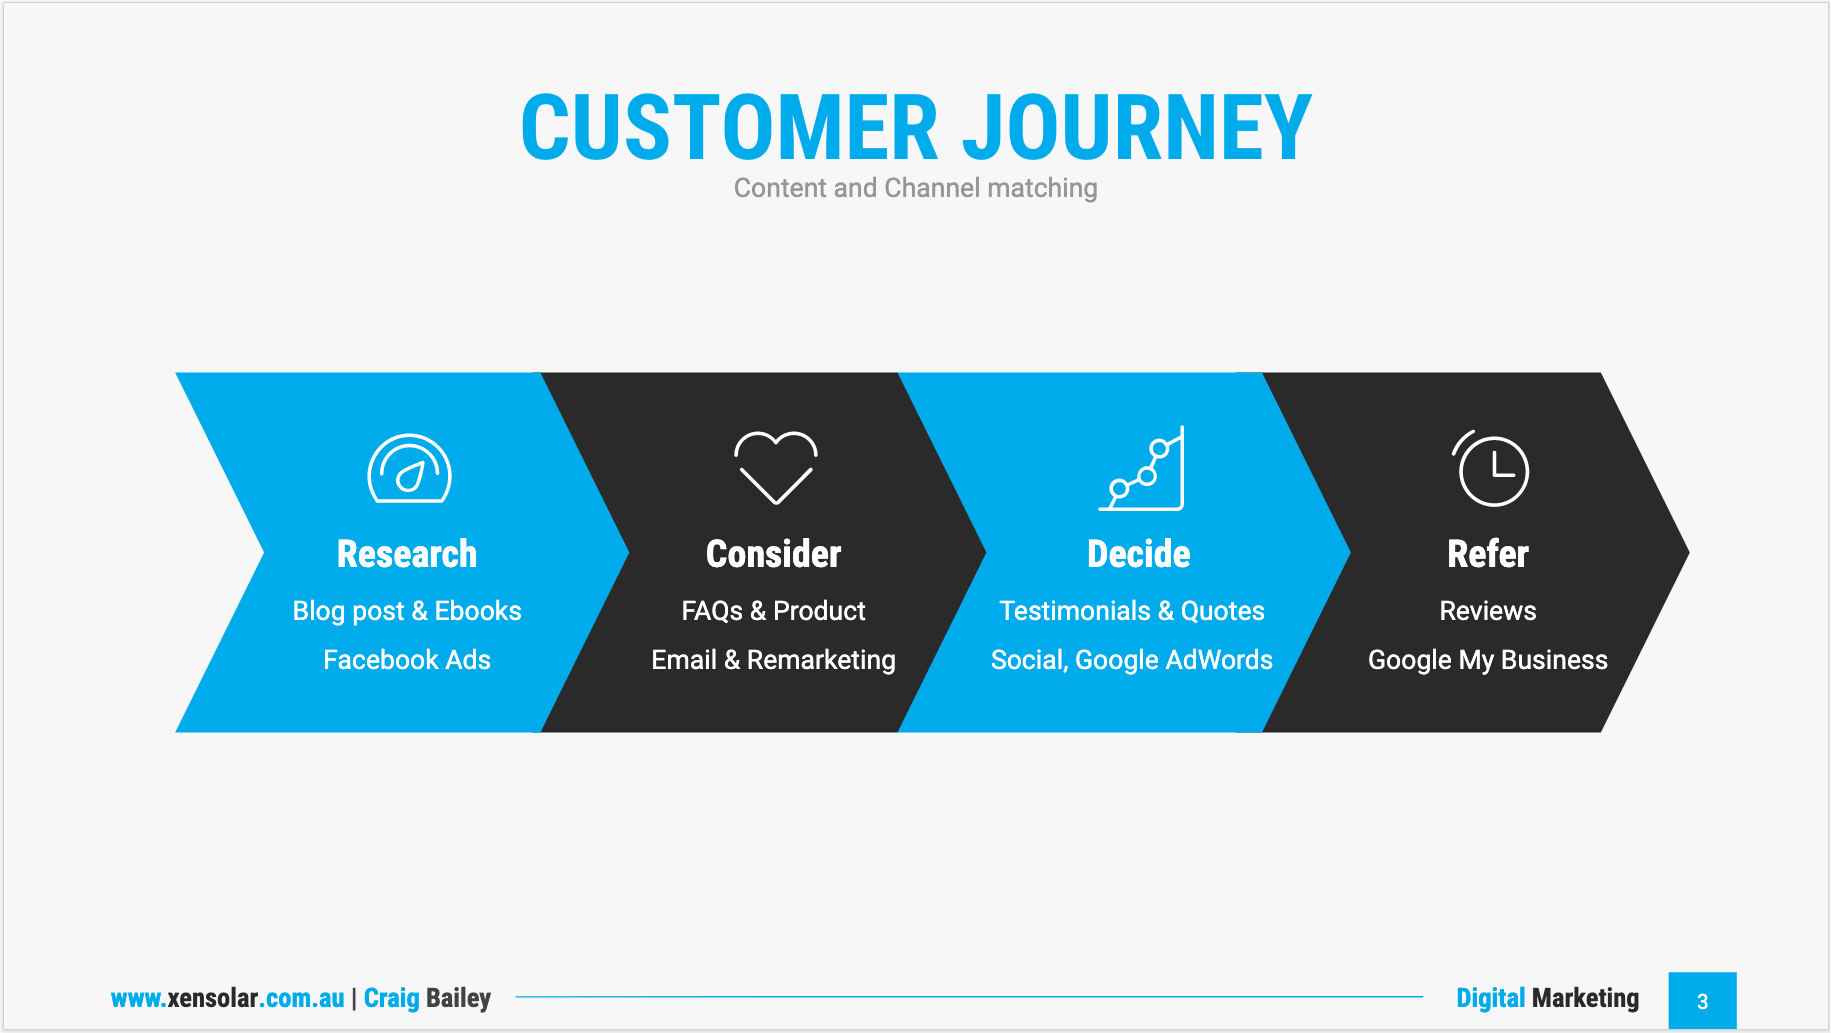 Customer Journey content assets